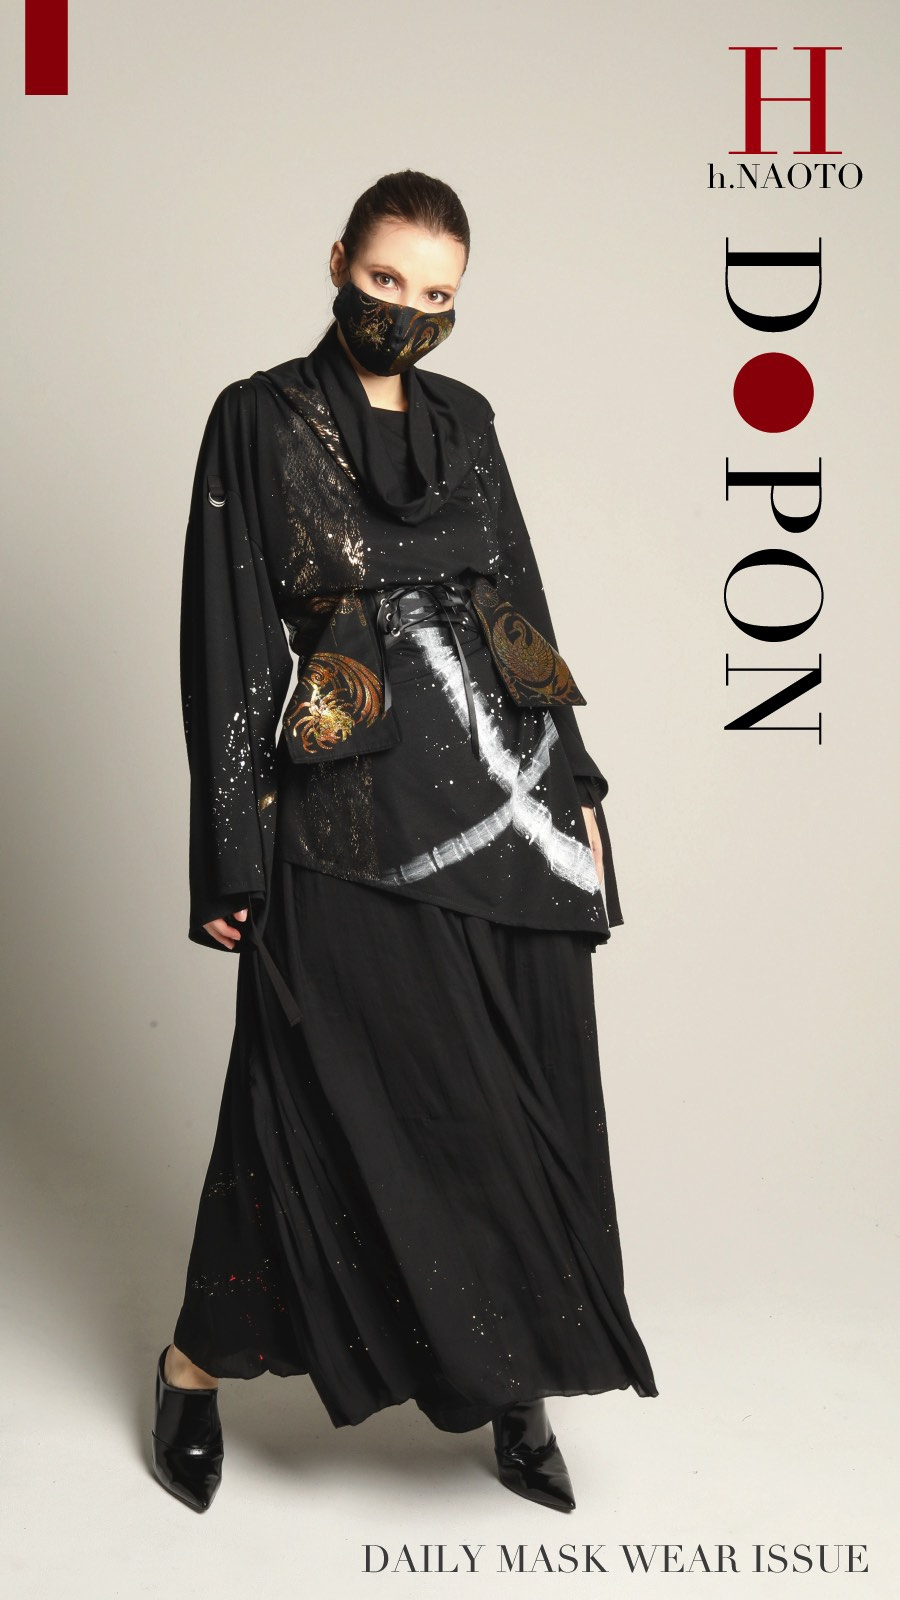 0403 D.PON - DAILY MASK WEAR ISSUE